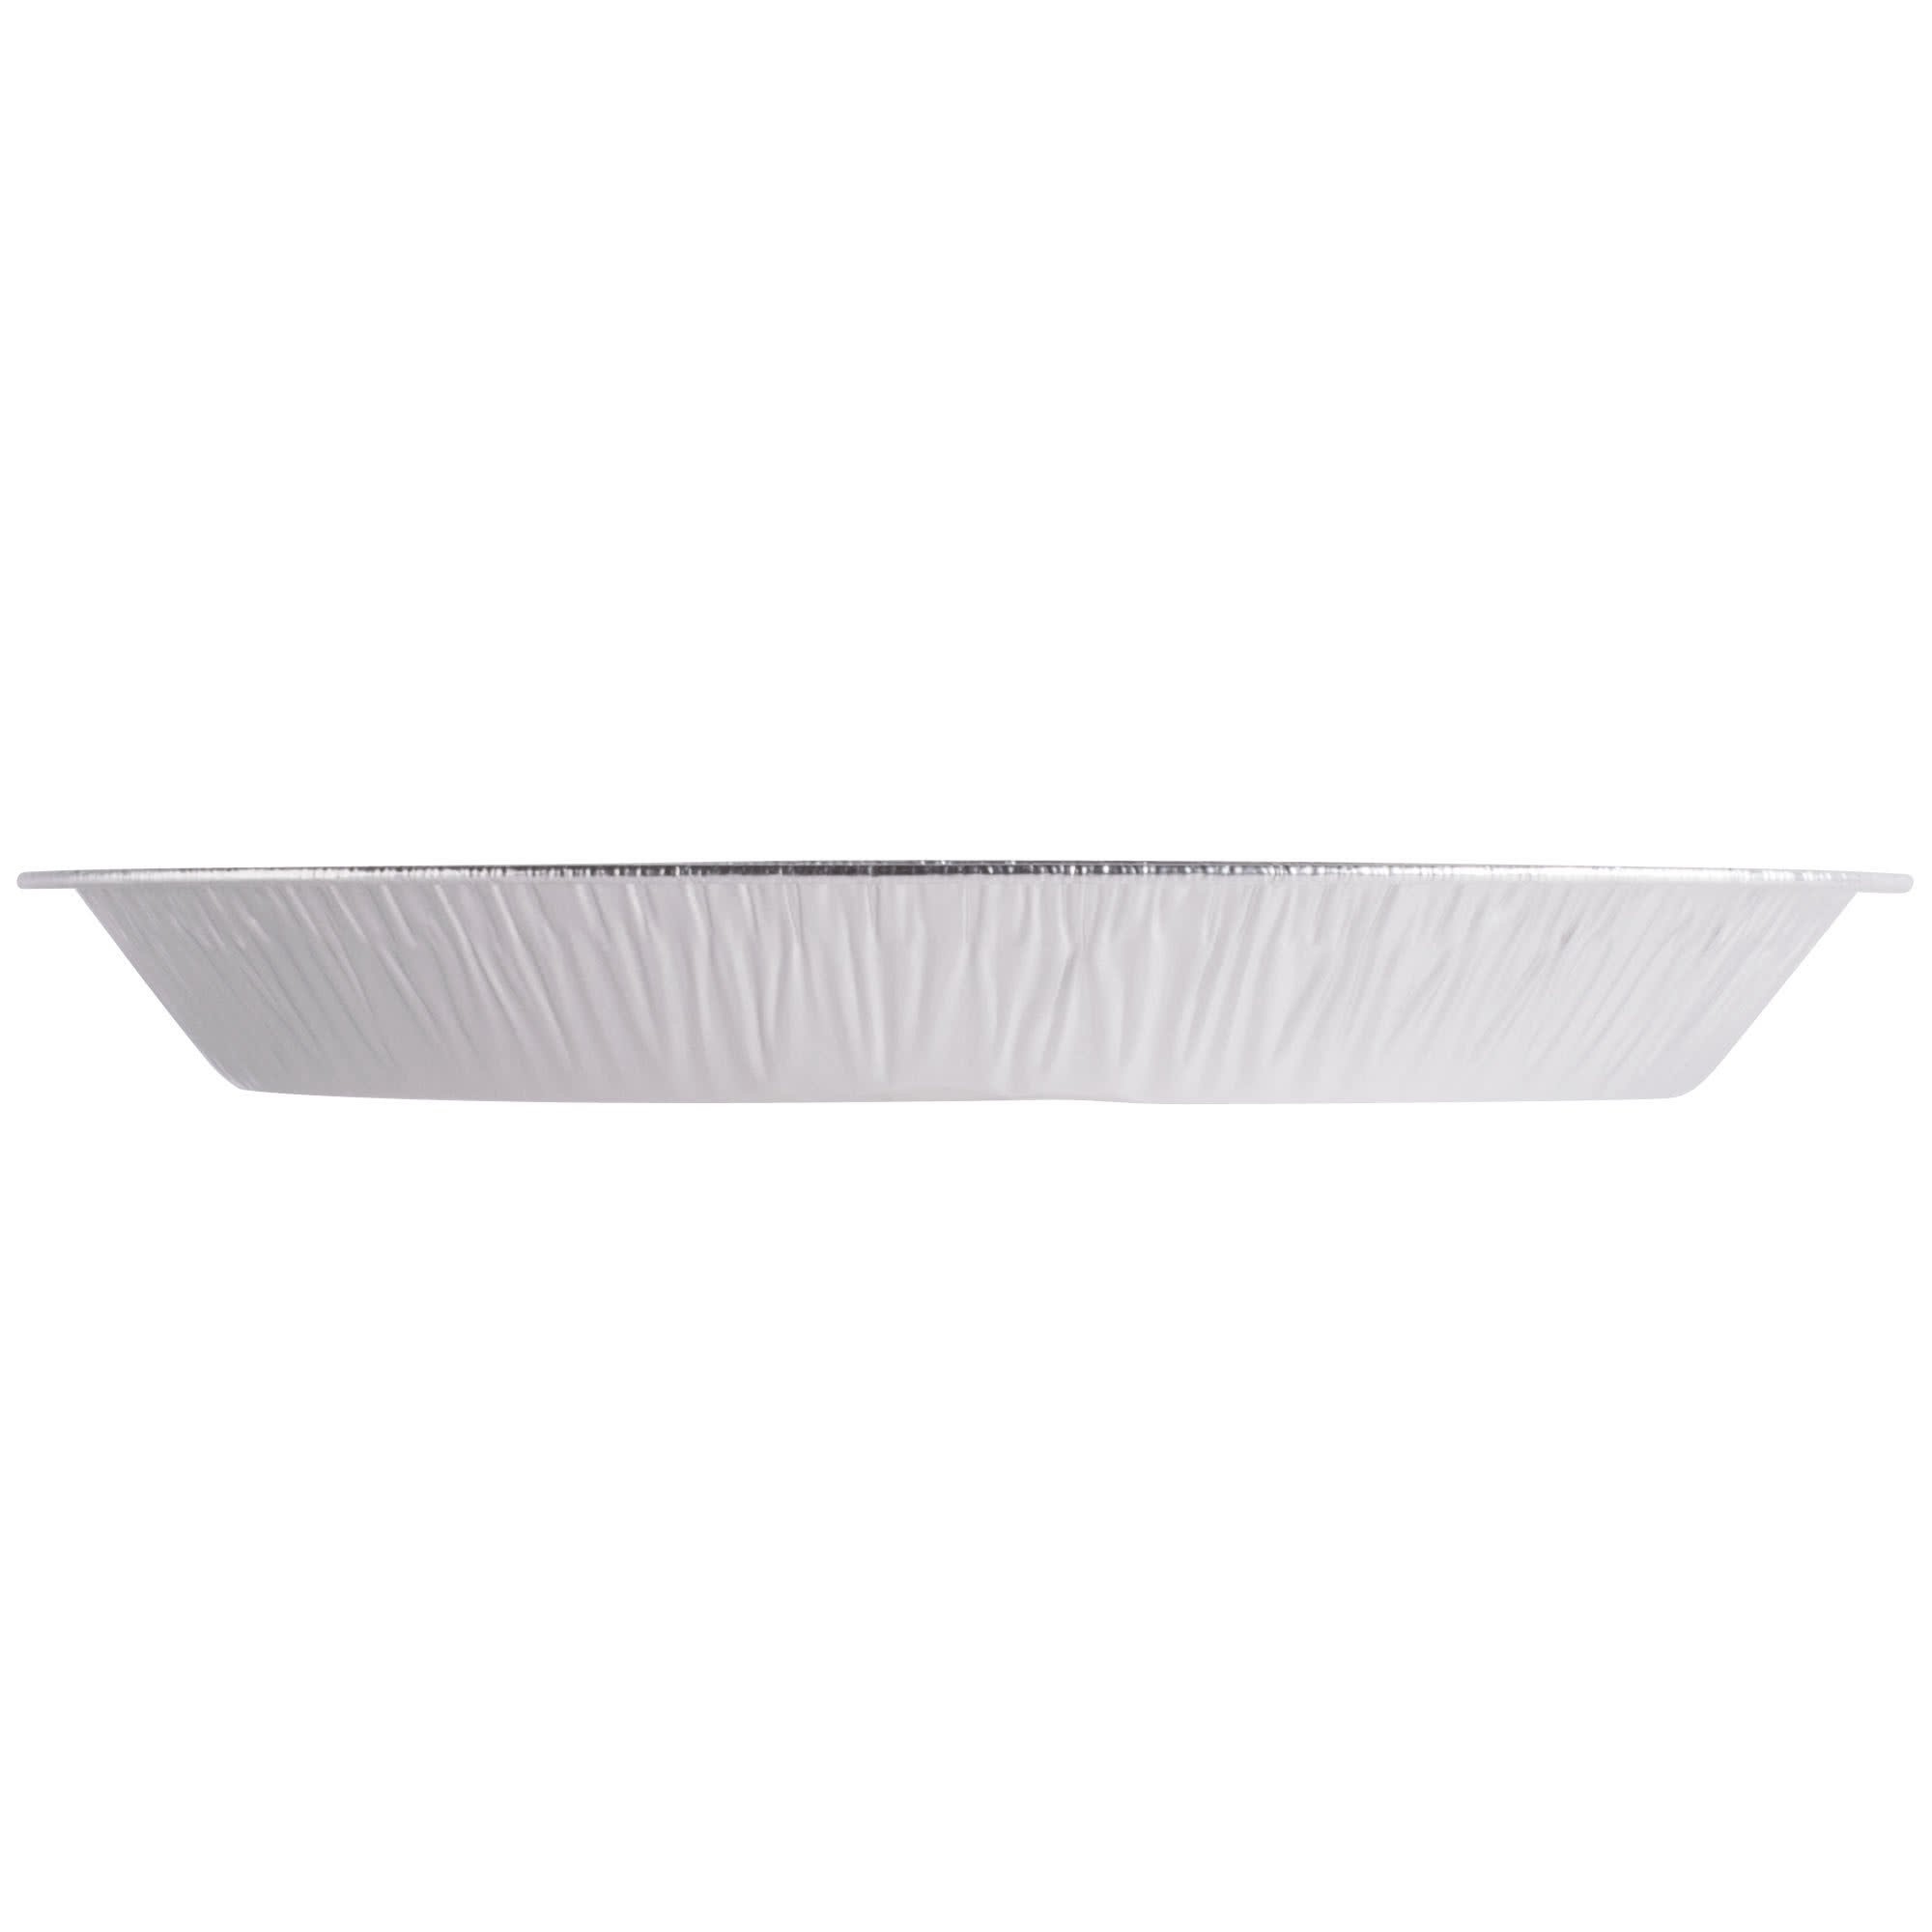 G78 11 11/16'' Extra-Deep Foil Pie Pan - 125/Pack By TableTop King